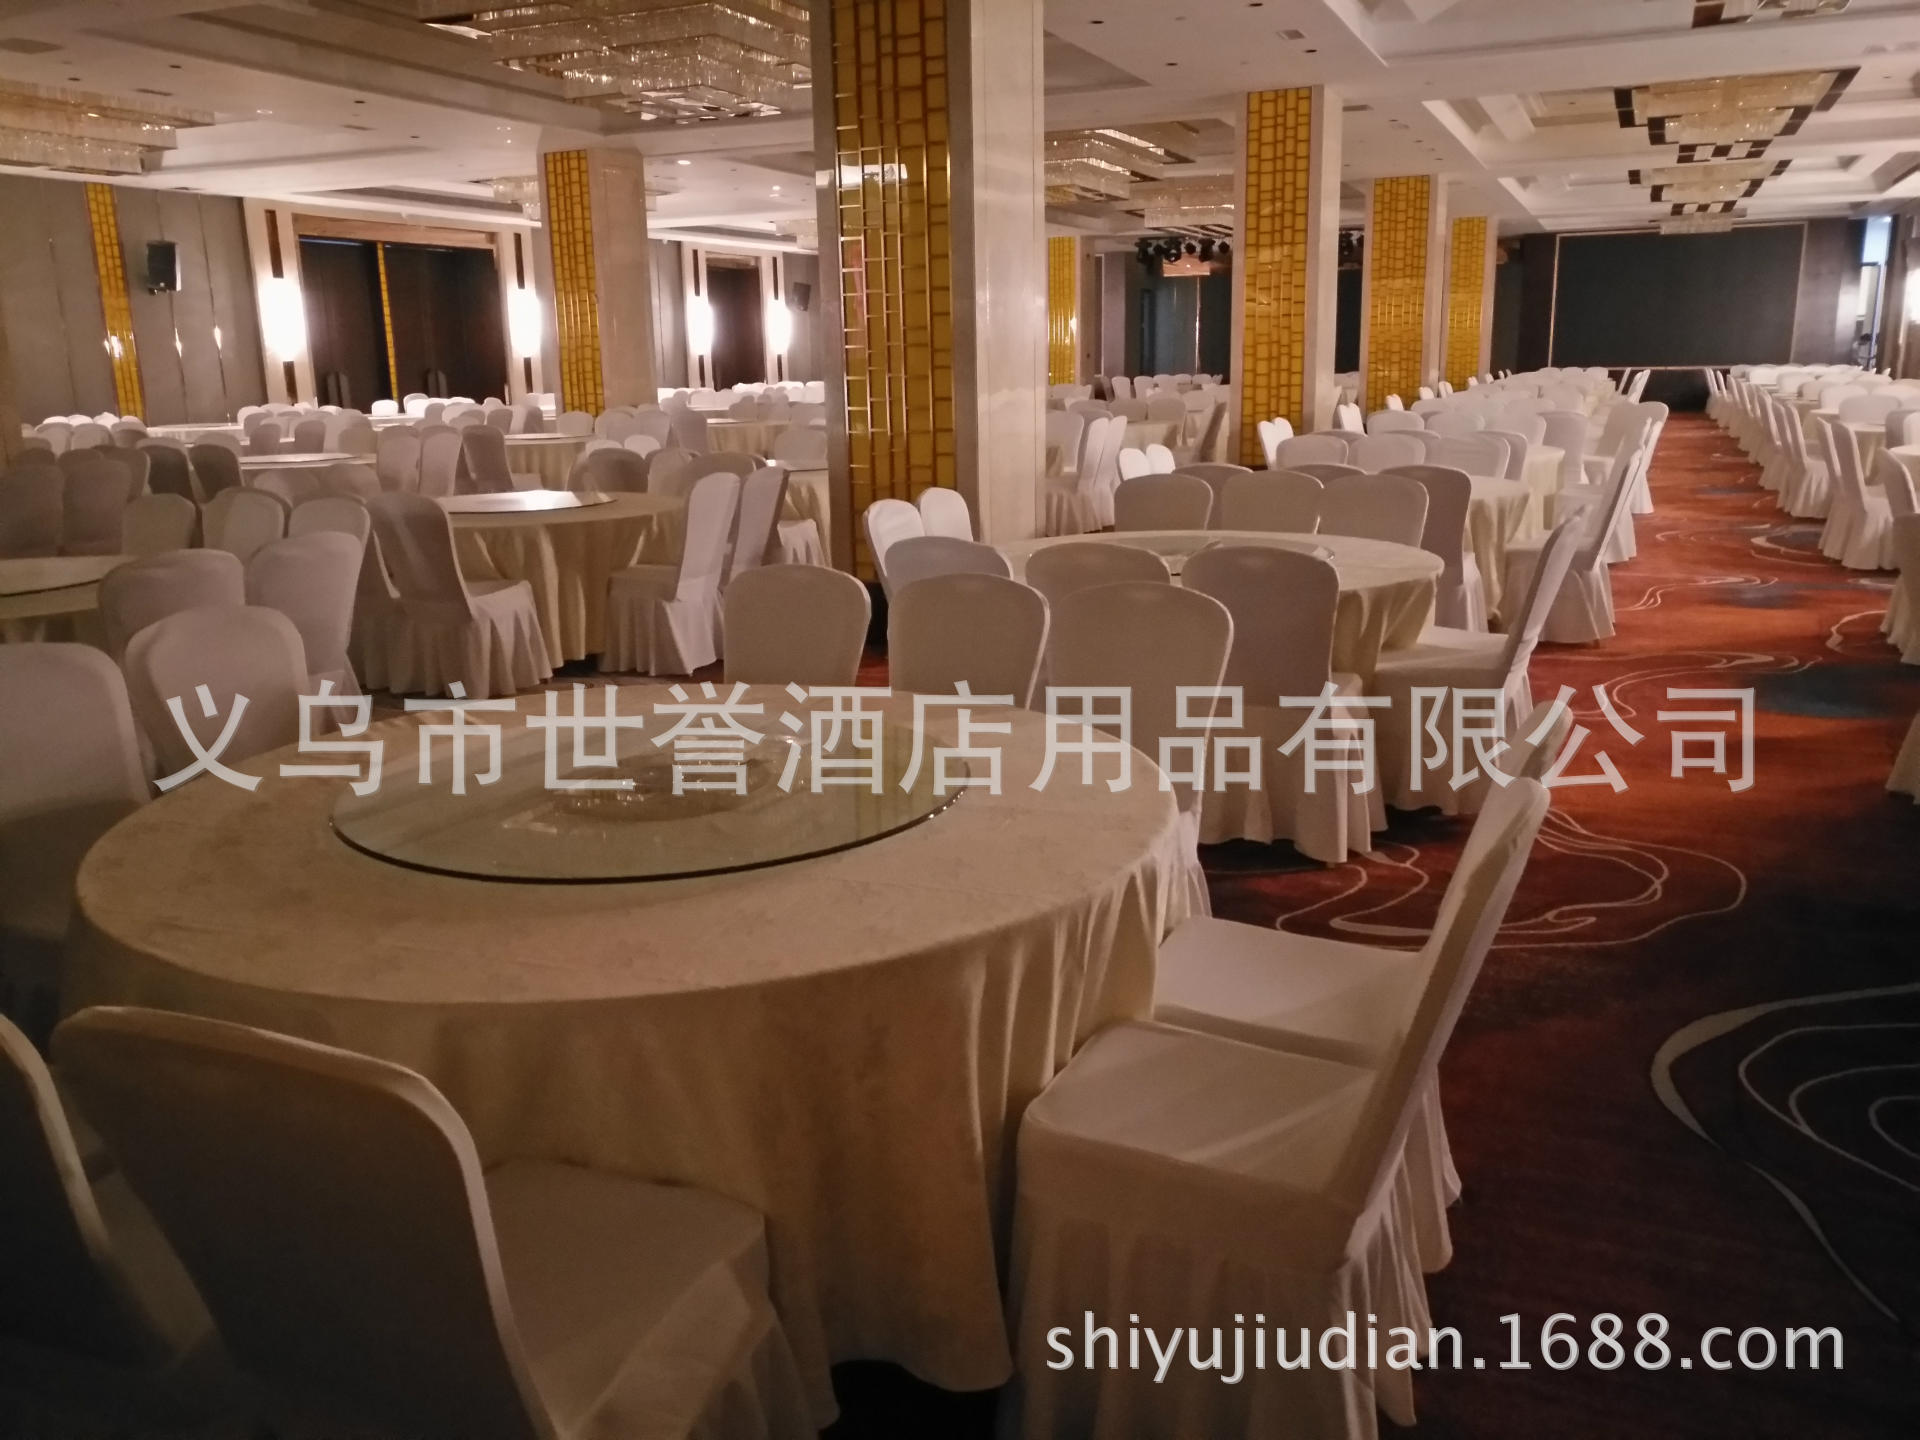 standard banquet chairs teak shower chair supply nanjing wuxi hotel wedding covers